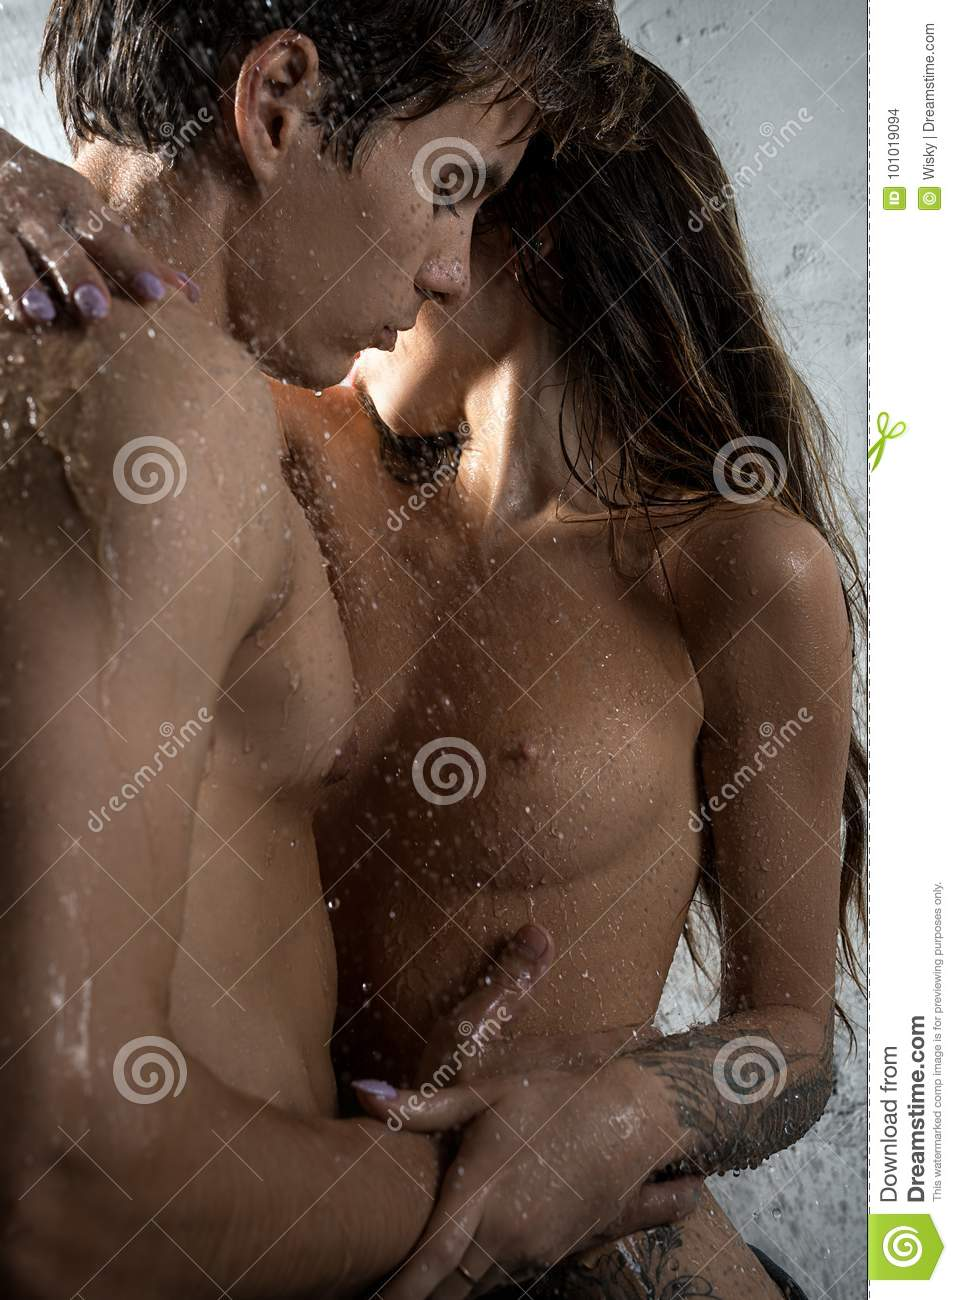 Photos of nude couples showering